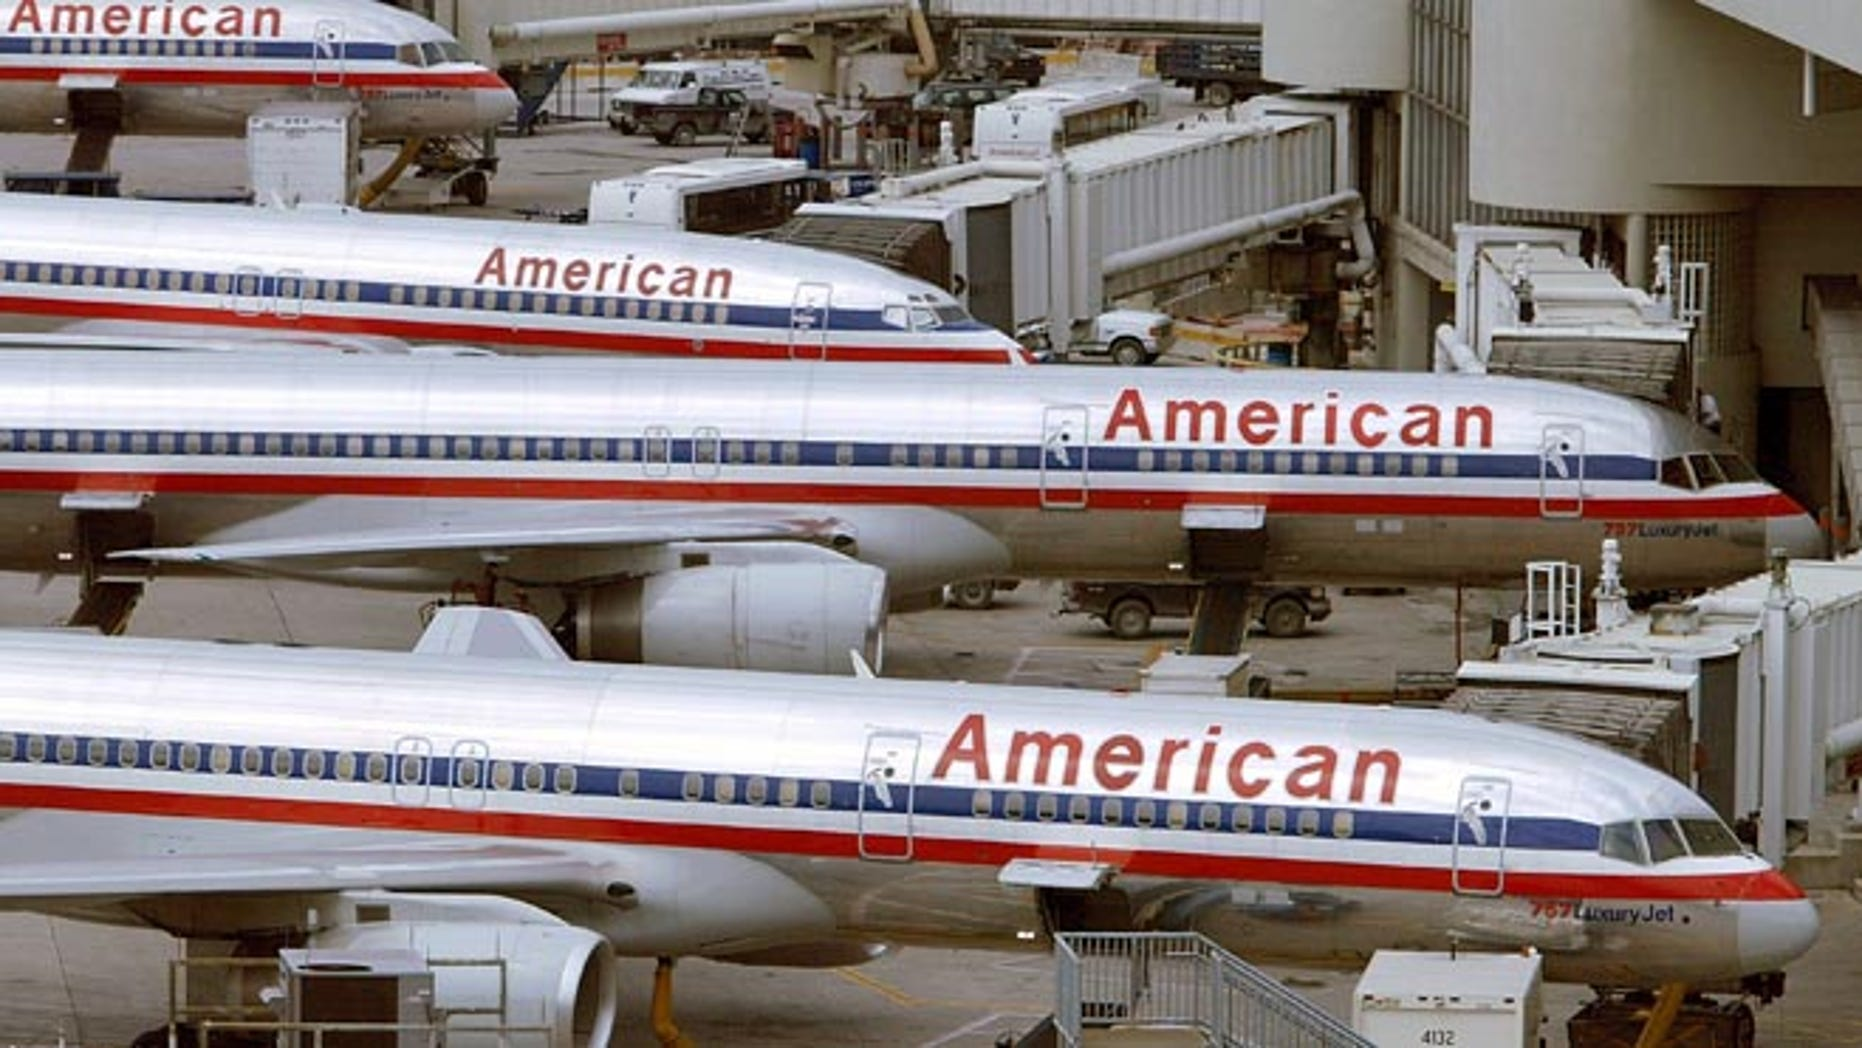 MIAMI - OCTOBER 16:  (FILE PHOTO)  American Airlines planes sit at a Miami International Airport terminal October 16, 2002 in Miami, Florida. Airline officials announced April 2, 2003 that a lay off of approximately 2,500 pilots will occur over the next year to try and prevent bankruptcy.  (Photo by Joe Raedle/Getty Images)